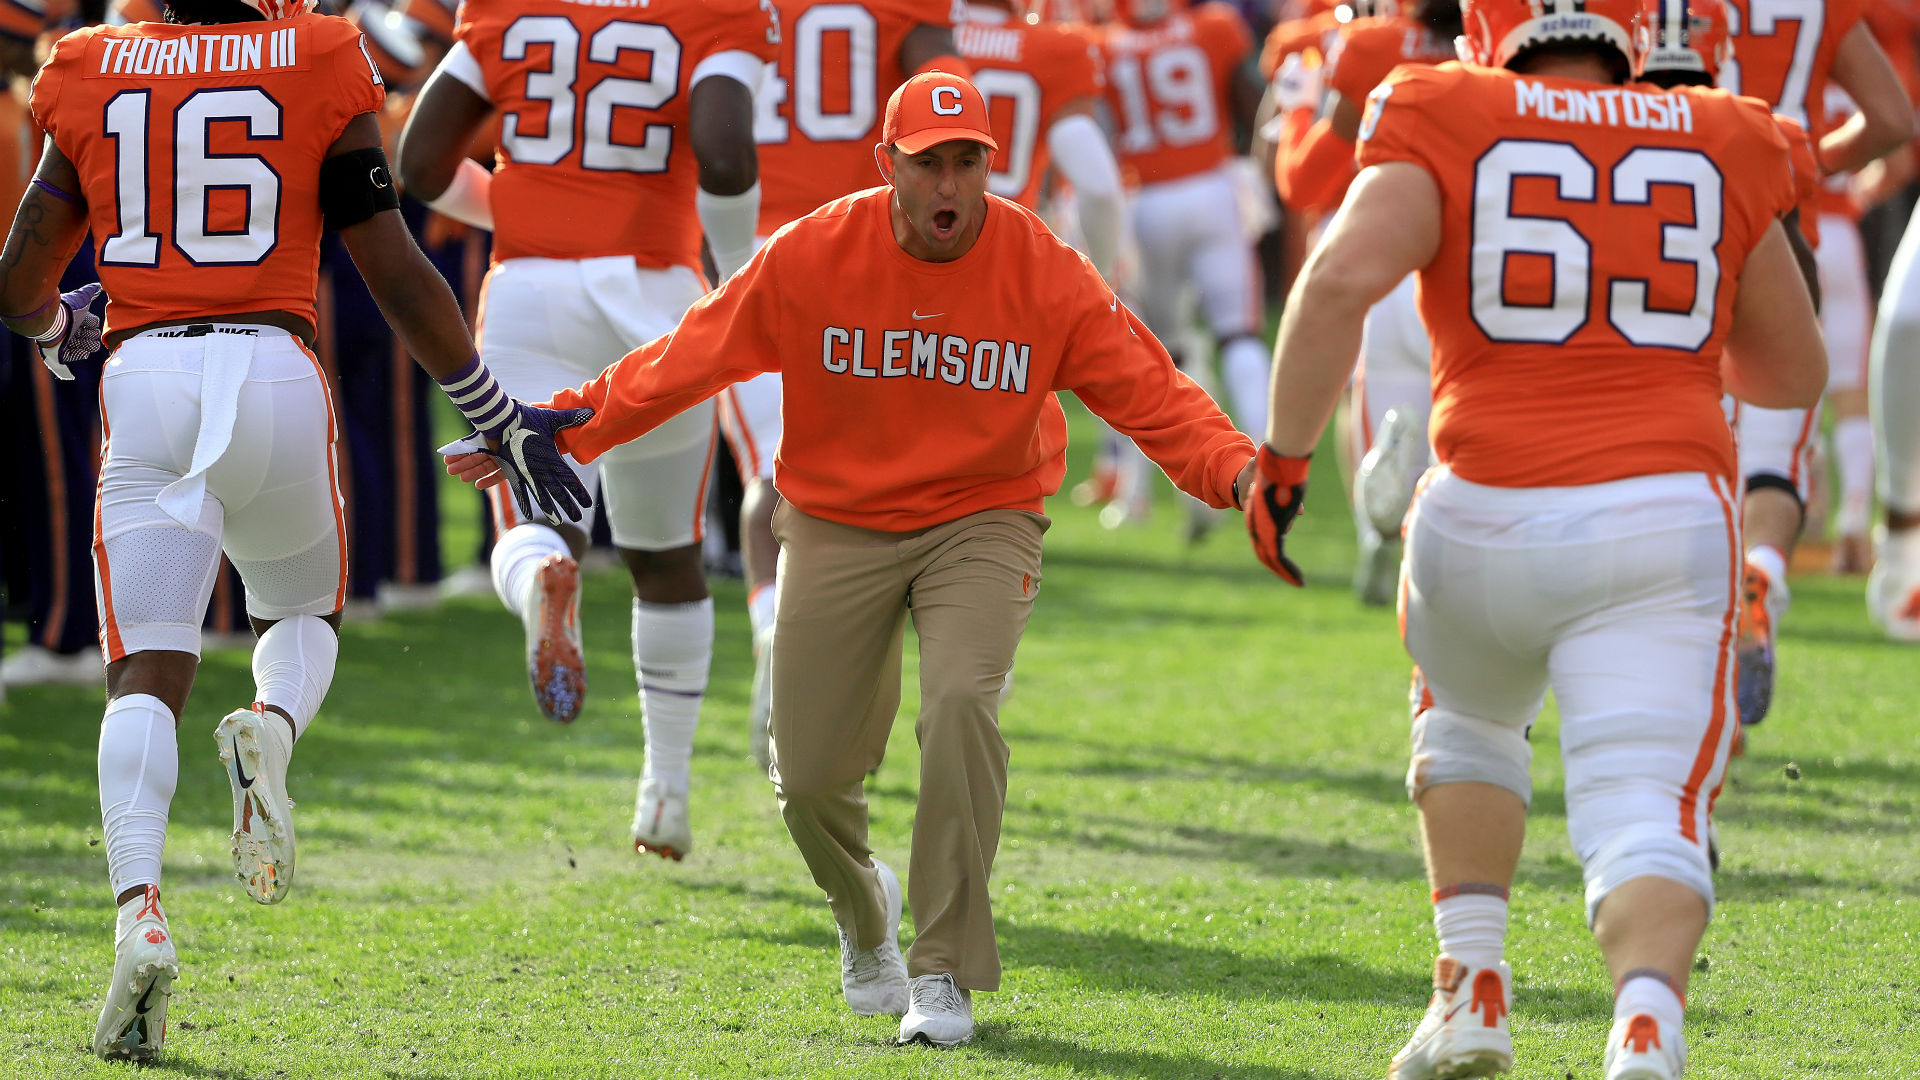 Bettor wagered $8.6K to win $8.60 for Clemson win over Syracuse